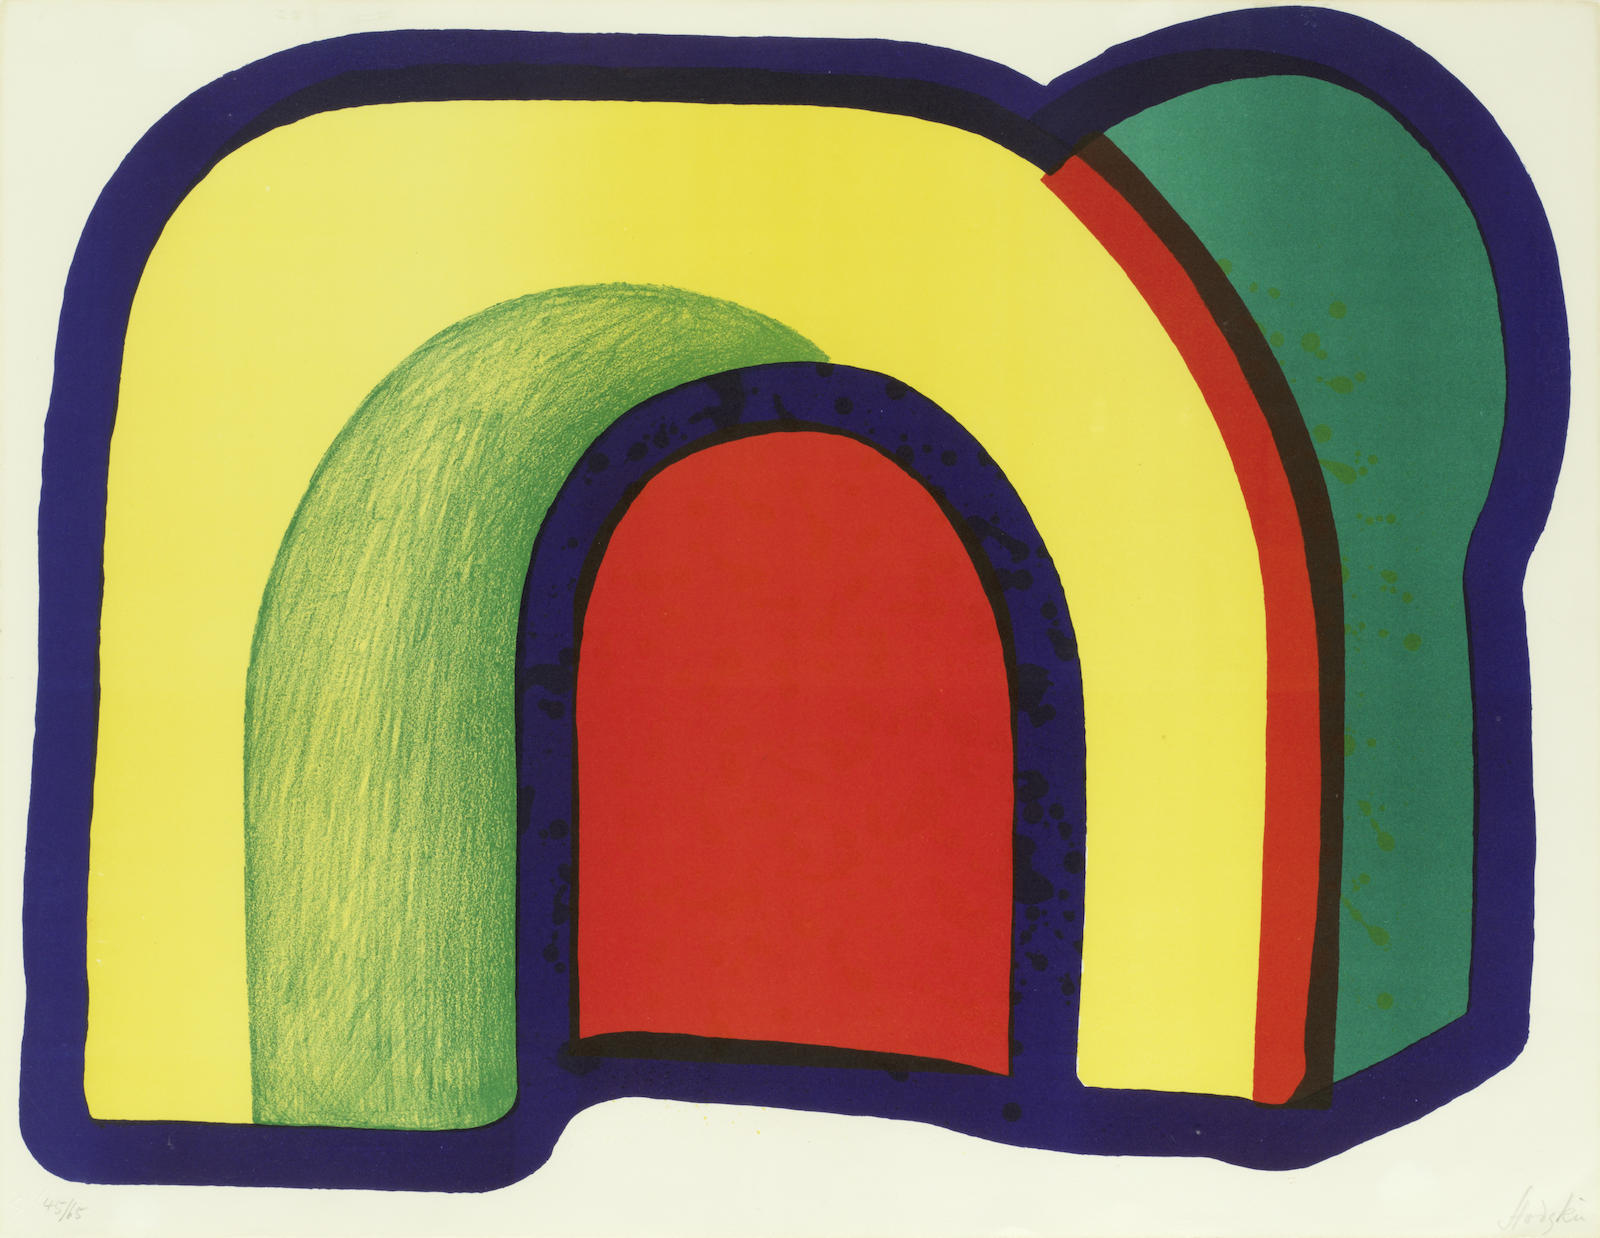 Howard Hodgkin-Arch (Composition with Red), from 'Europaische Graphik VII. Englische Kunstler'-1970